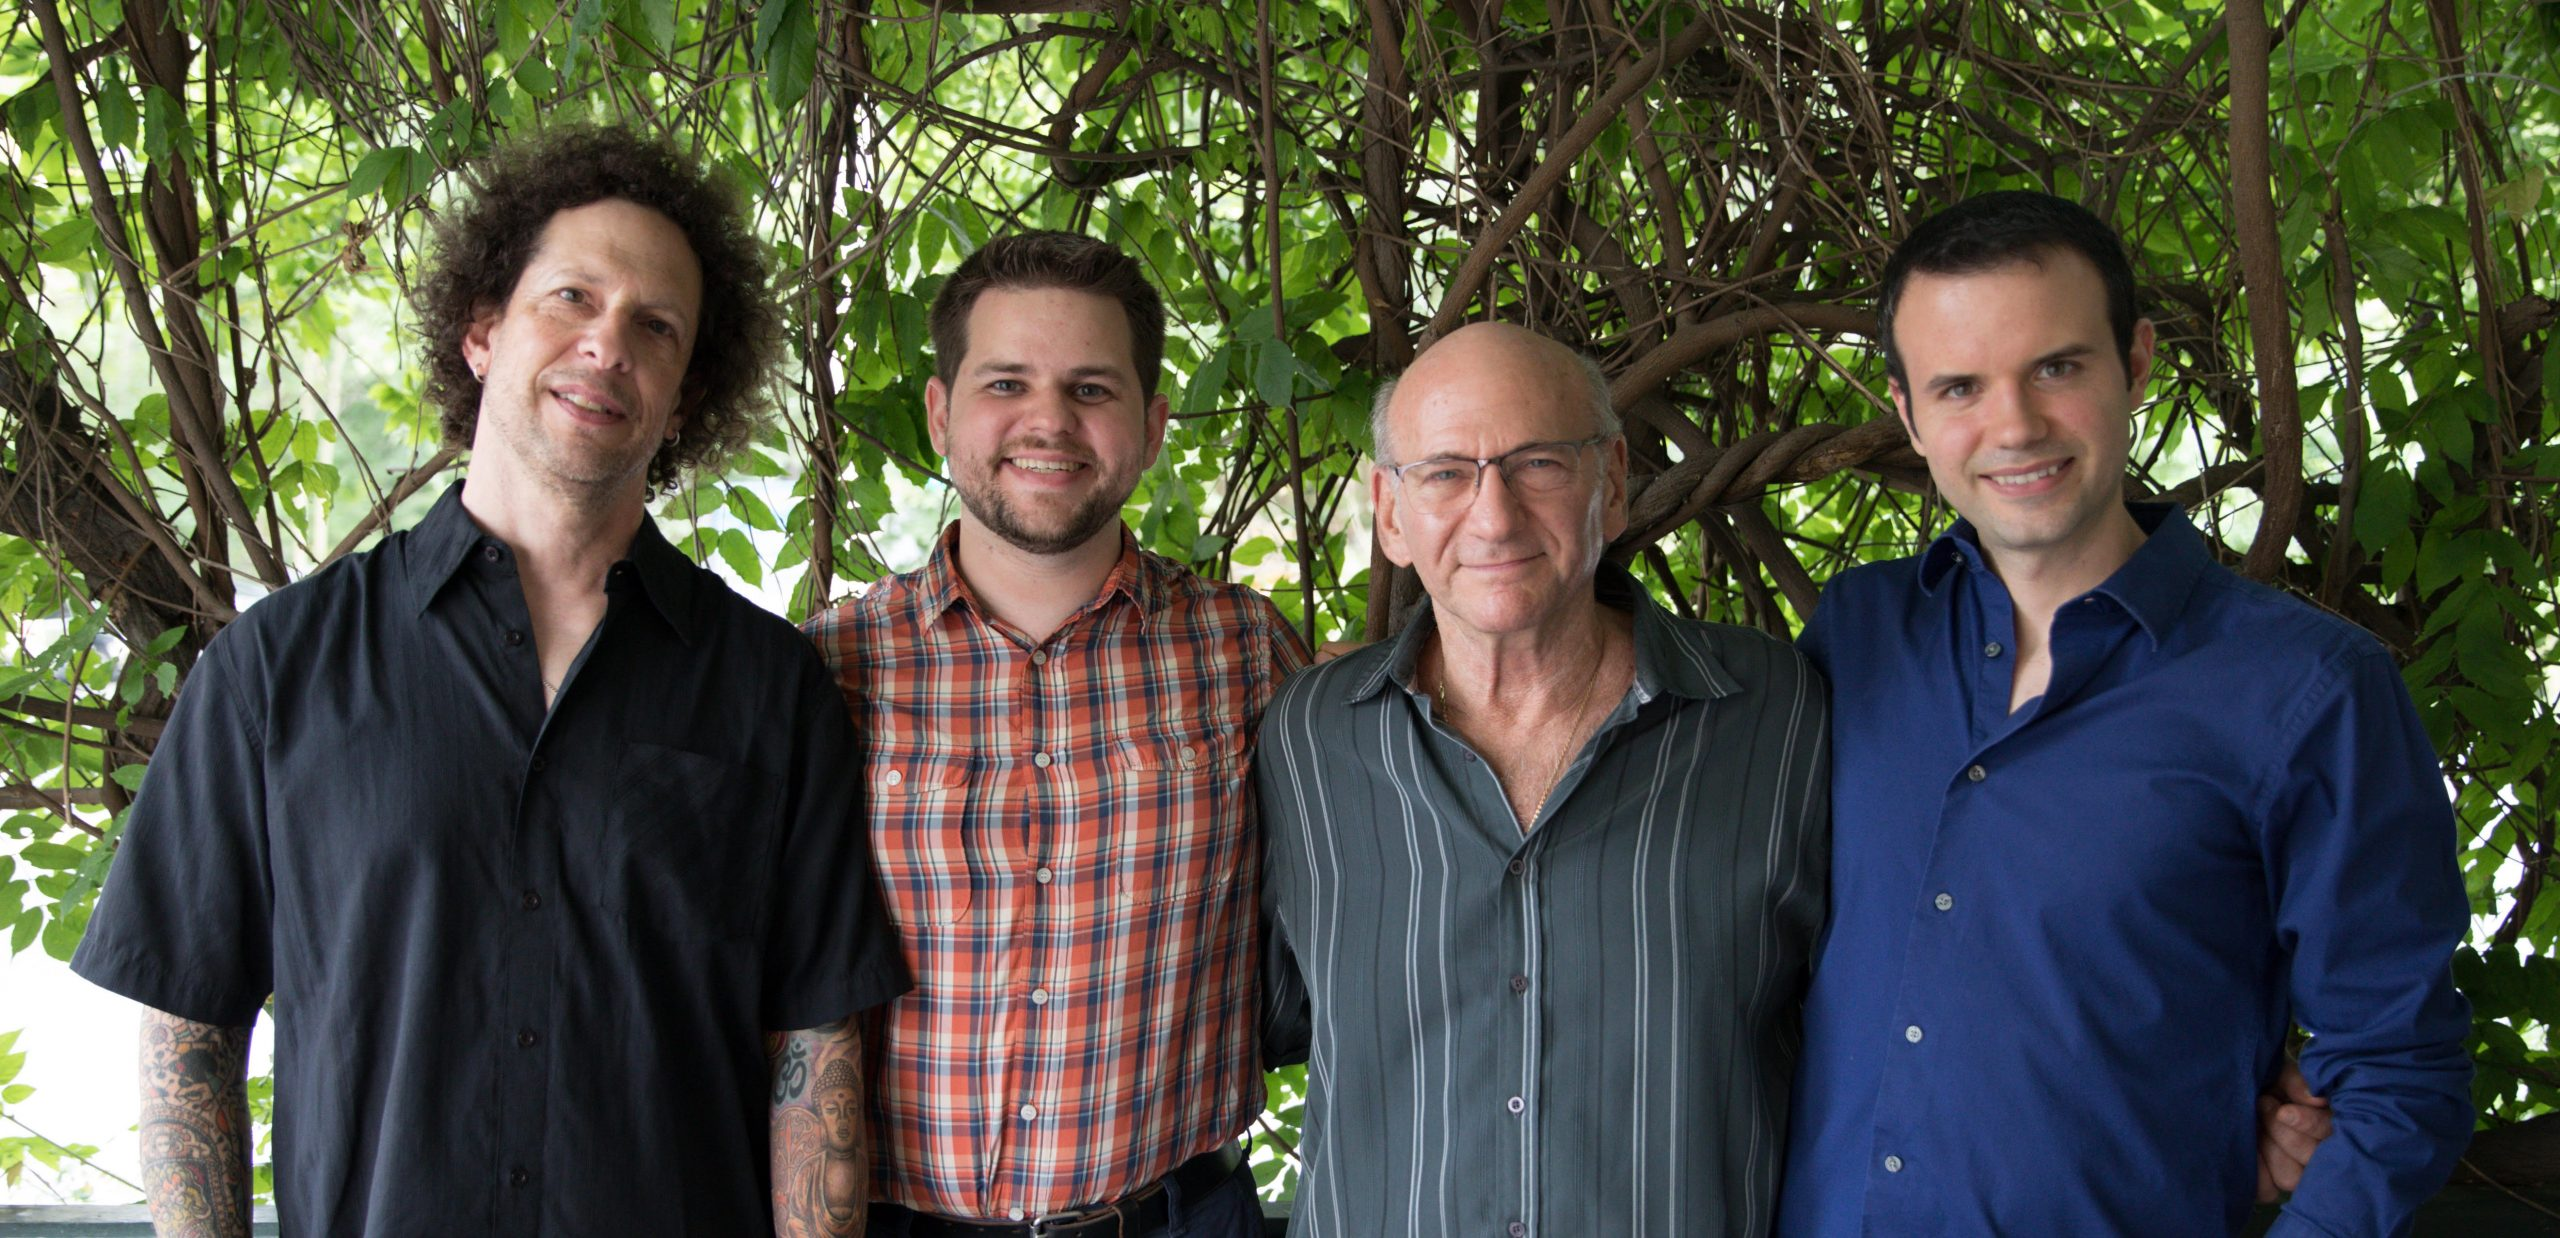 ANUNCIO: The Generations Quartet con Dave Liebman presenta Invitation – Canción A Quemarropa